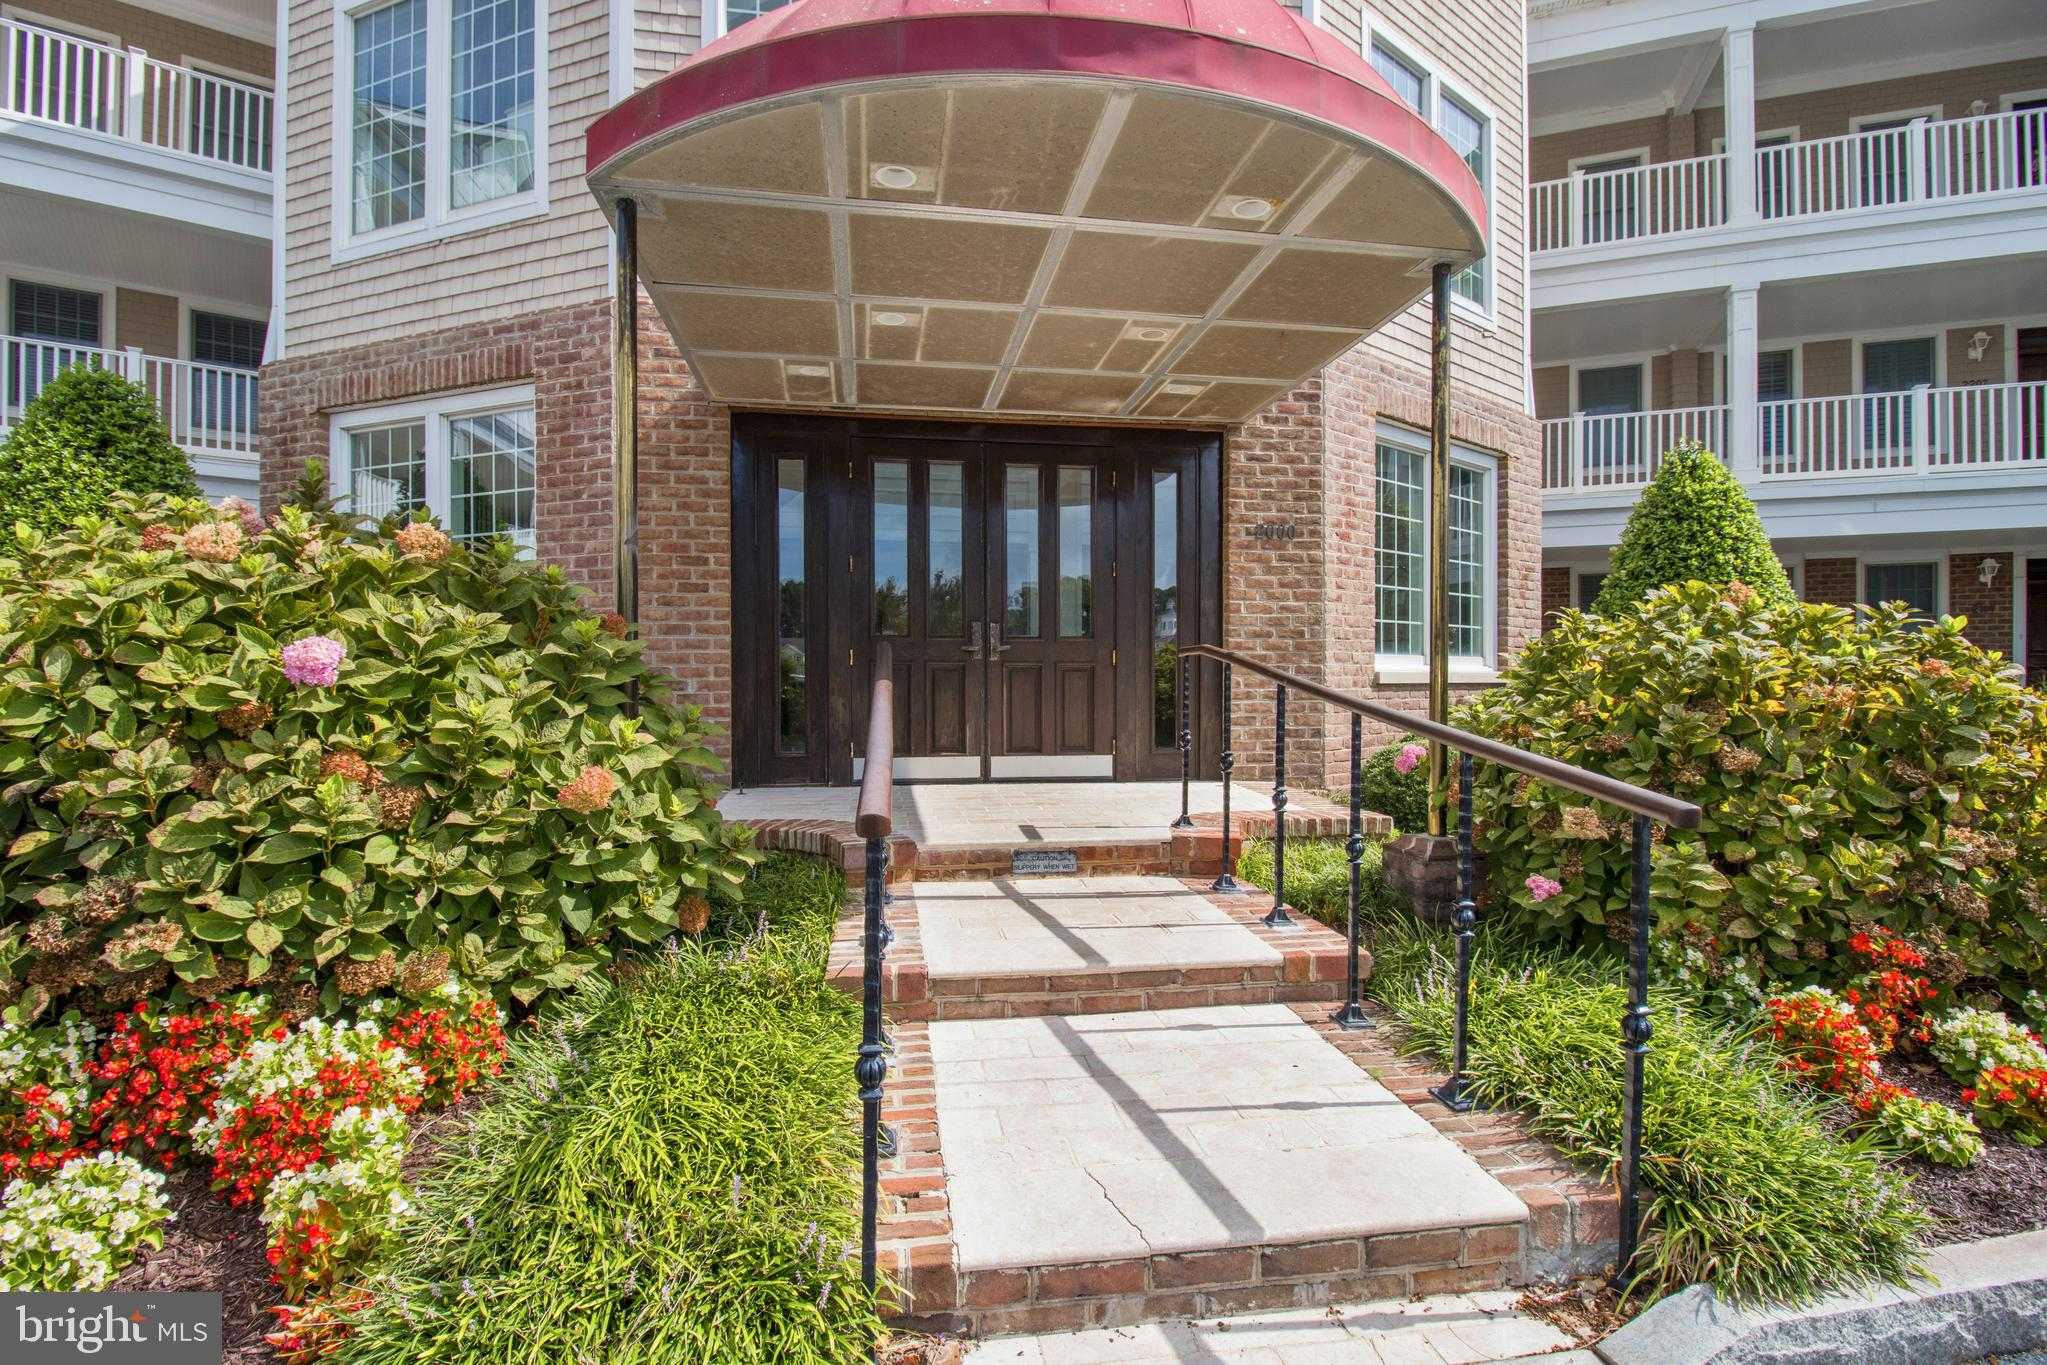 """WOW will be the first words out of your mouth when you walk into this unique """"Pivot"""" unit in  sought after Points Reach at The Point in Ocean Pines! Every detail was considered throughout this 3 bed, 3 full bath home, with an additional half bath in the hall way for guests.  Sweeping panoramic waterviews of the Ocean City skyline and Turville Creek. Italian marble flooring in the bathrooms and on each of the TWO patios.  The outside also boasts a Viking built in gas grill for your use!  Granite countertops in the kitchen and Jenn Air stove, ovens (two) and microwave. California closets in 3 master closets and 1 foyer closet.  Geothermal heating and air, as well as a gas fireplace and tinted windows.  West Coast Hollywood Infrared Sauna is just one more thing to enjoy about this home! Bike storage for owners and all the amenities that Ocean Pines has to offer!  Multiple pools, golf membership available, tennis courts, pickle ball, multiple parks, and the list goes on and on! Make an appointment to see this today.  Do NOT miss out!"""